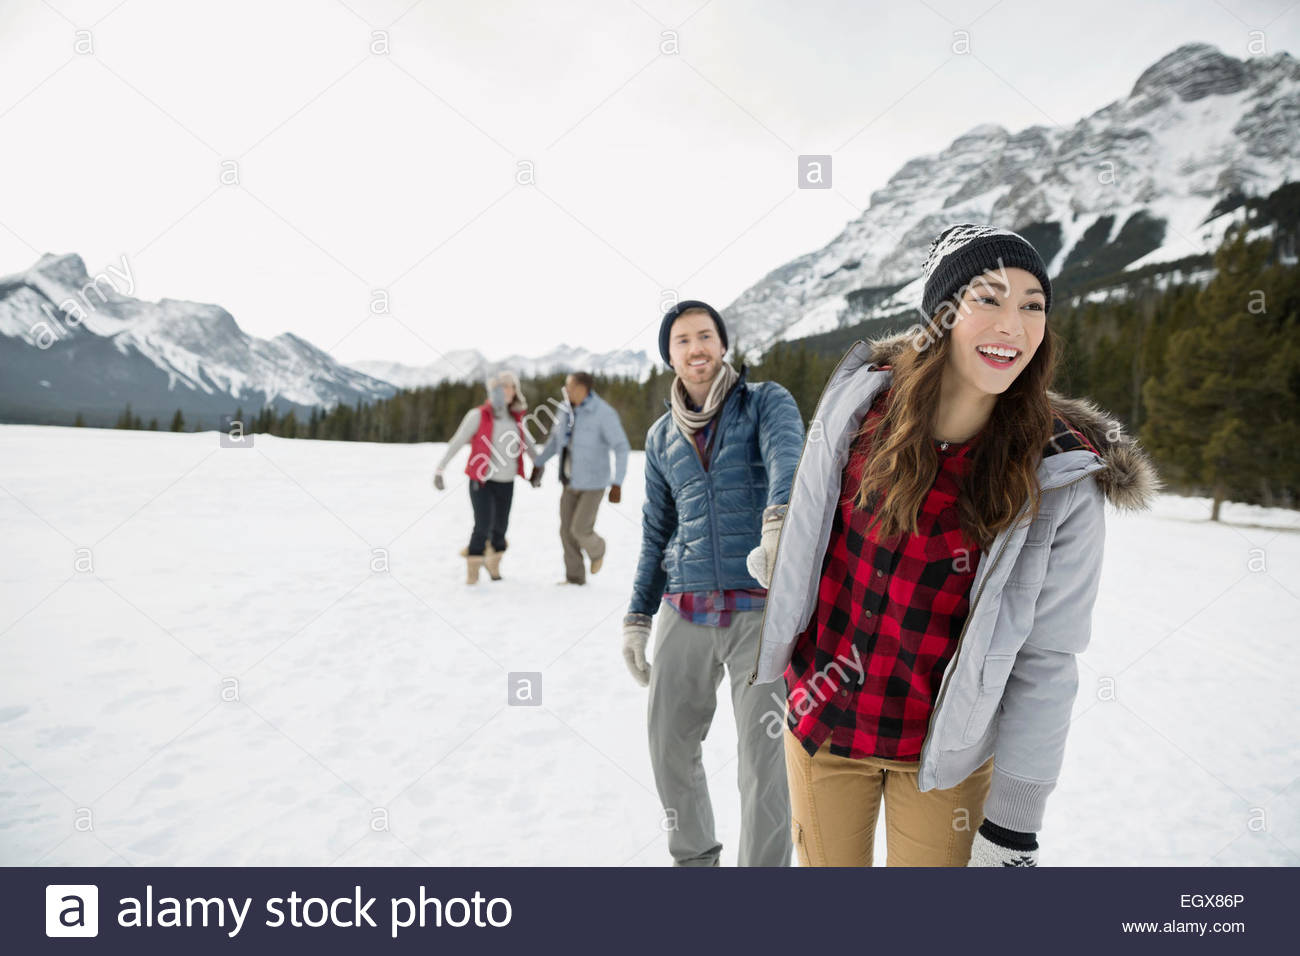 Couple holding hands in snowy field below mountains - Stock Image